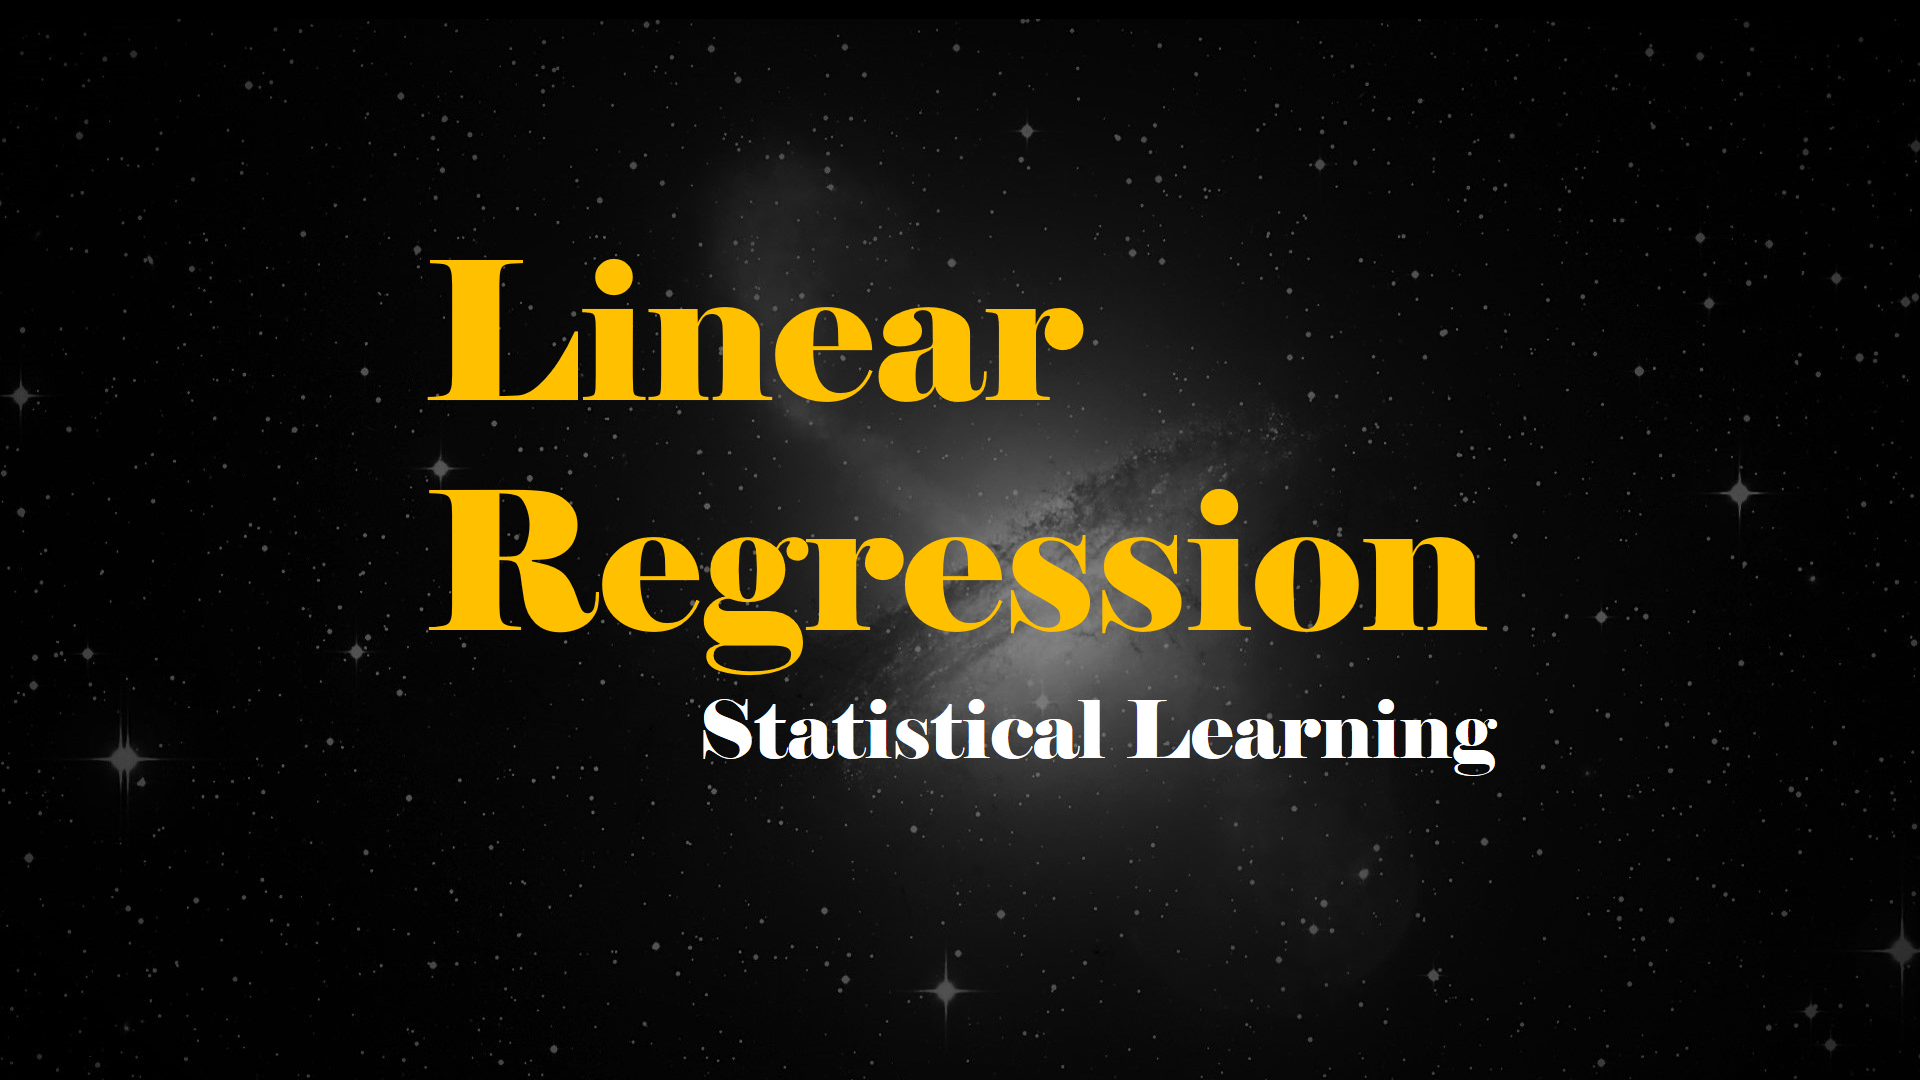 Linear Regression — Statistical Learning - Analytics Vidhya